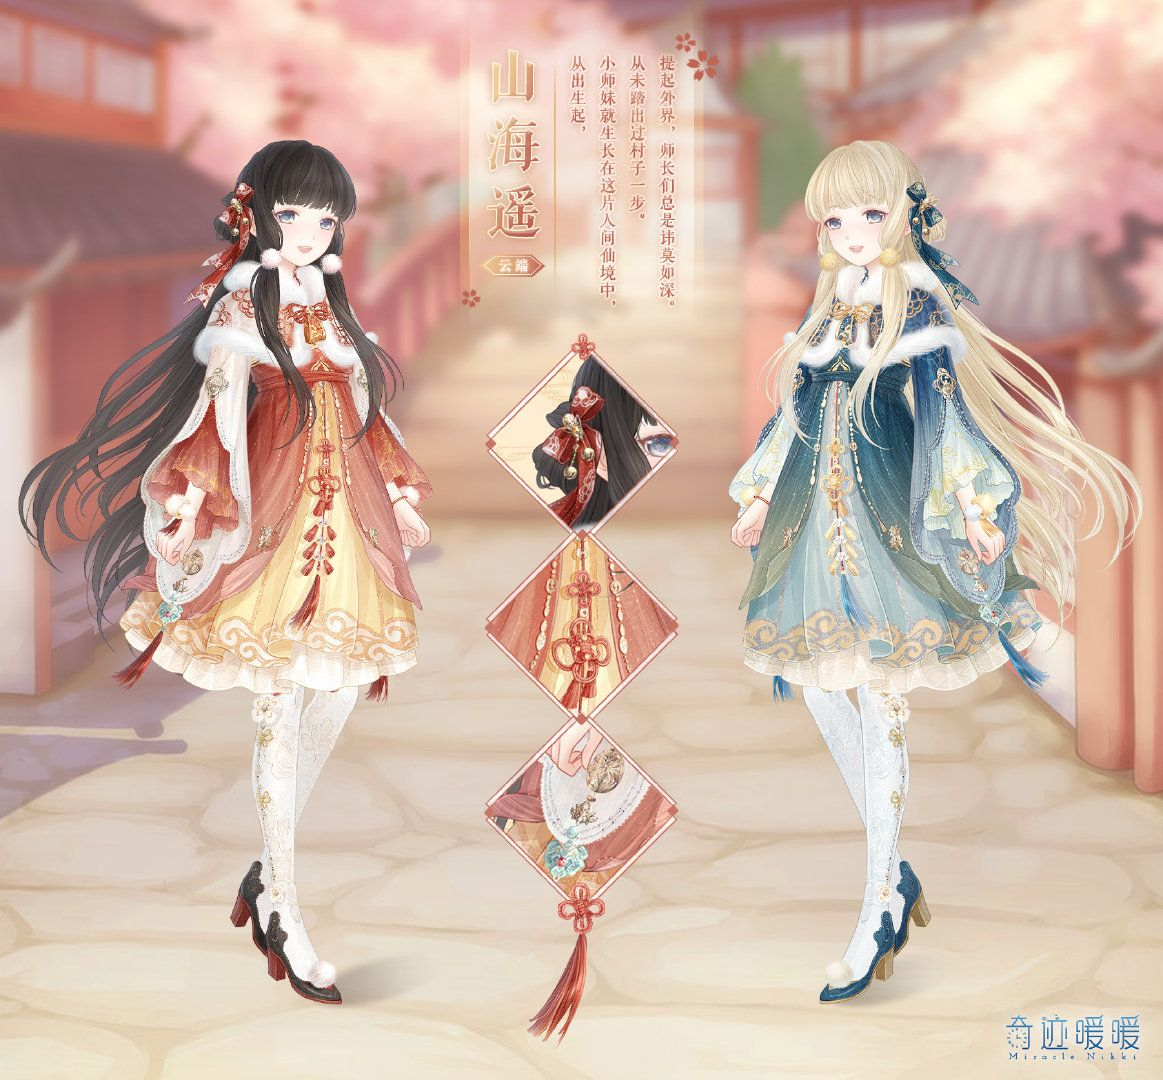 Miracle Nikki CN 奇迹暖暖 / Story Suit No.14 Spring